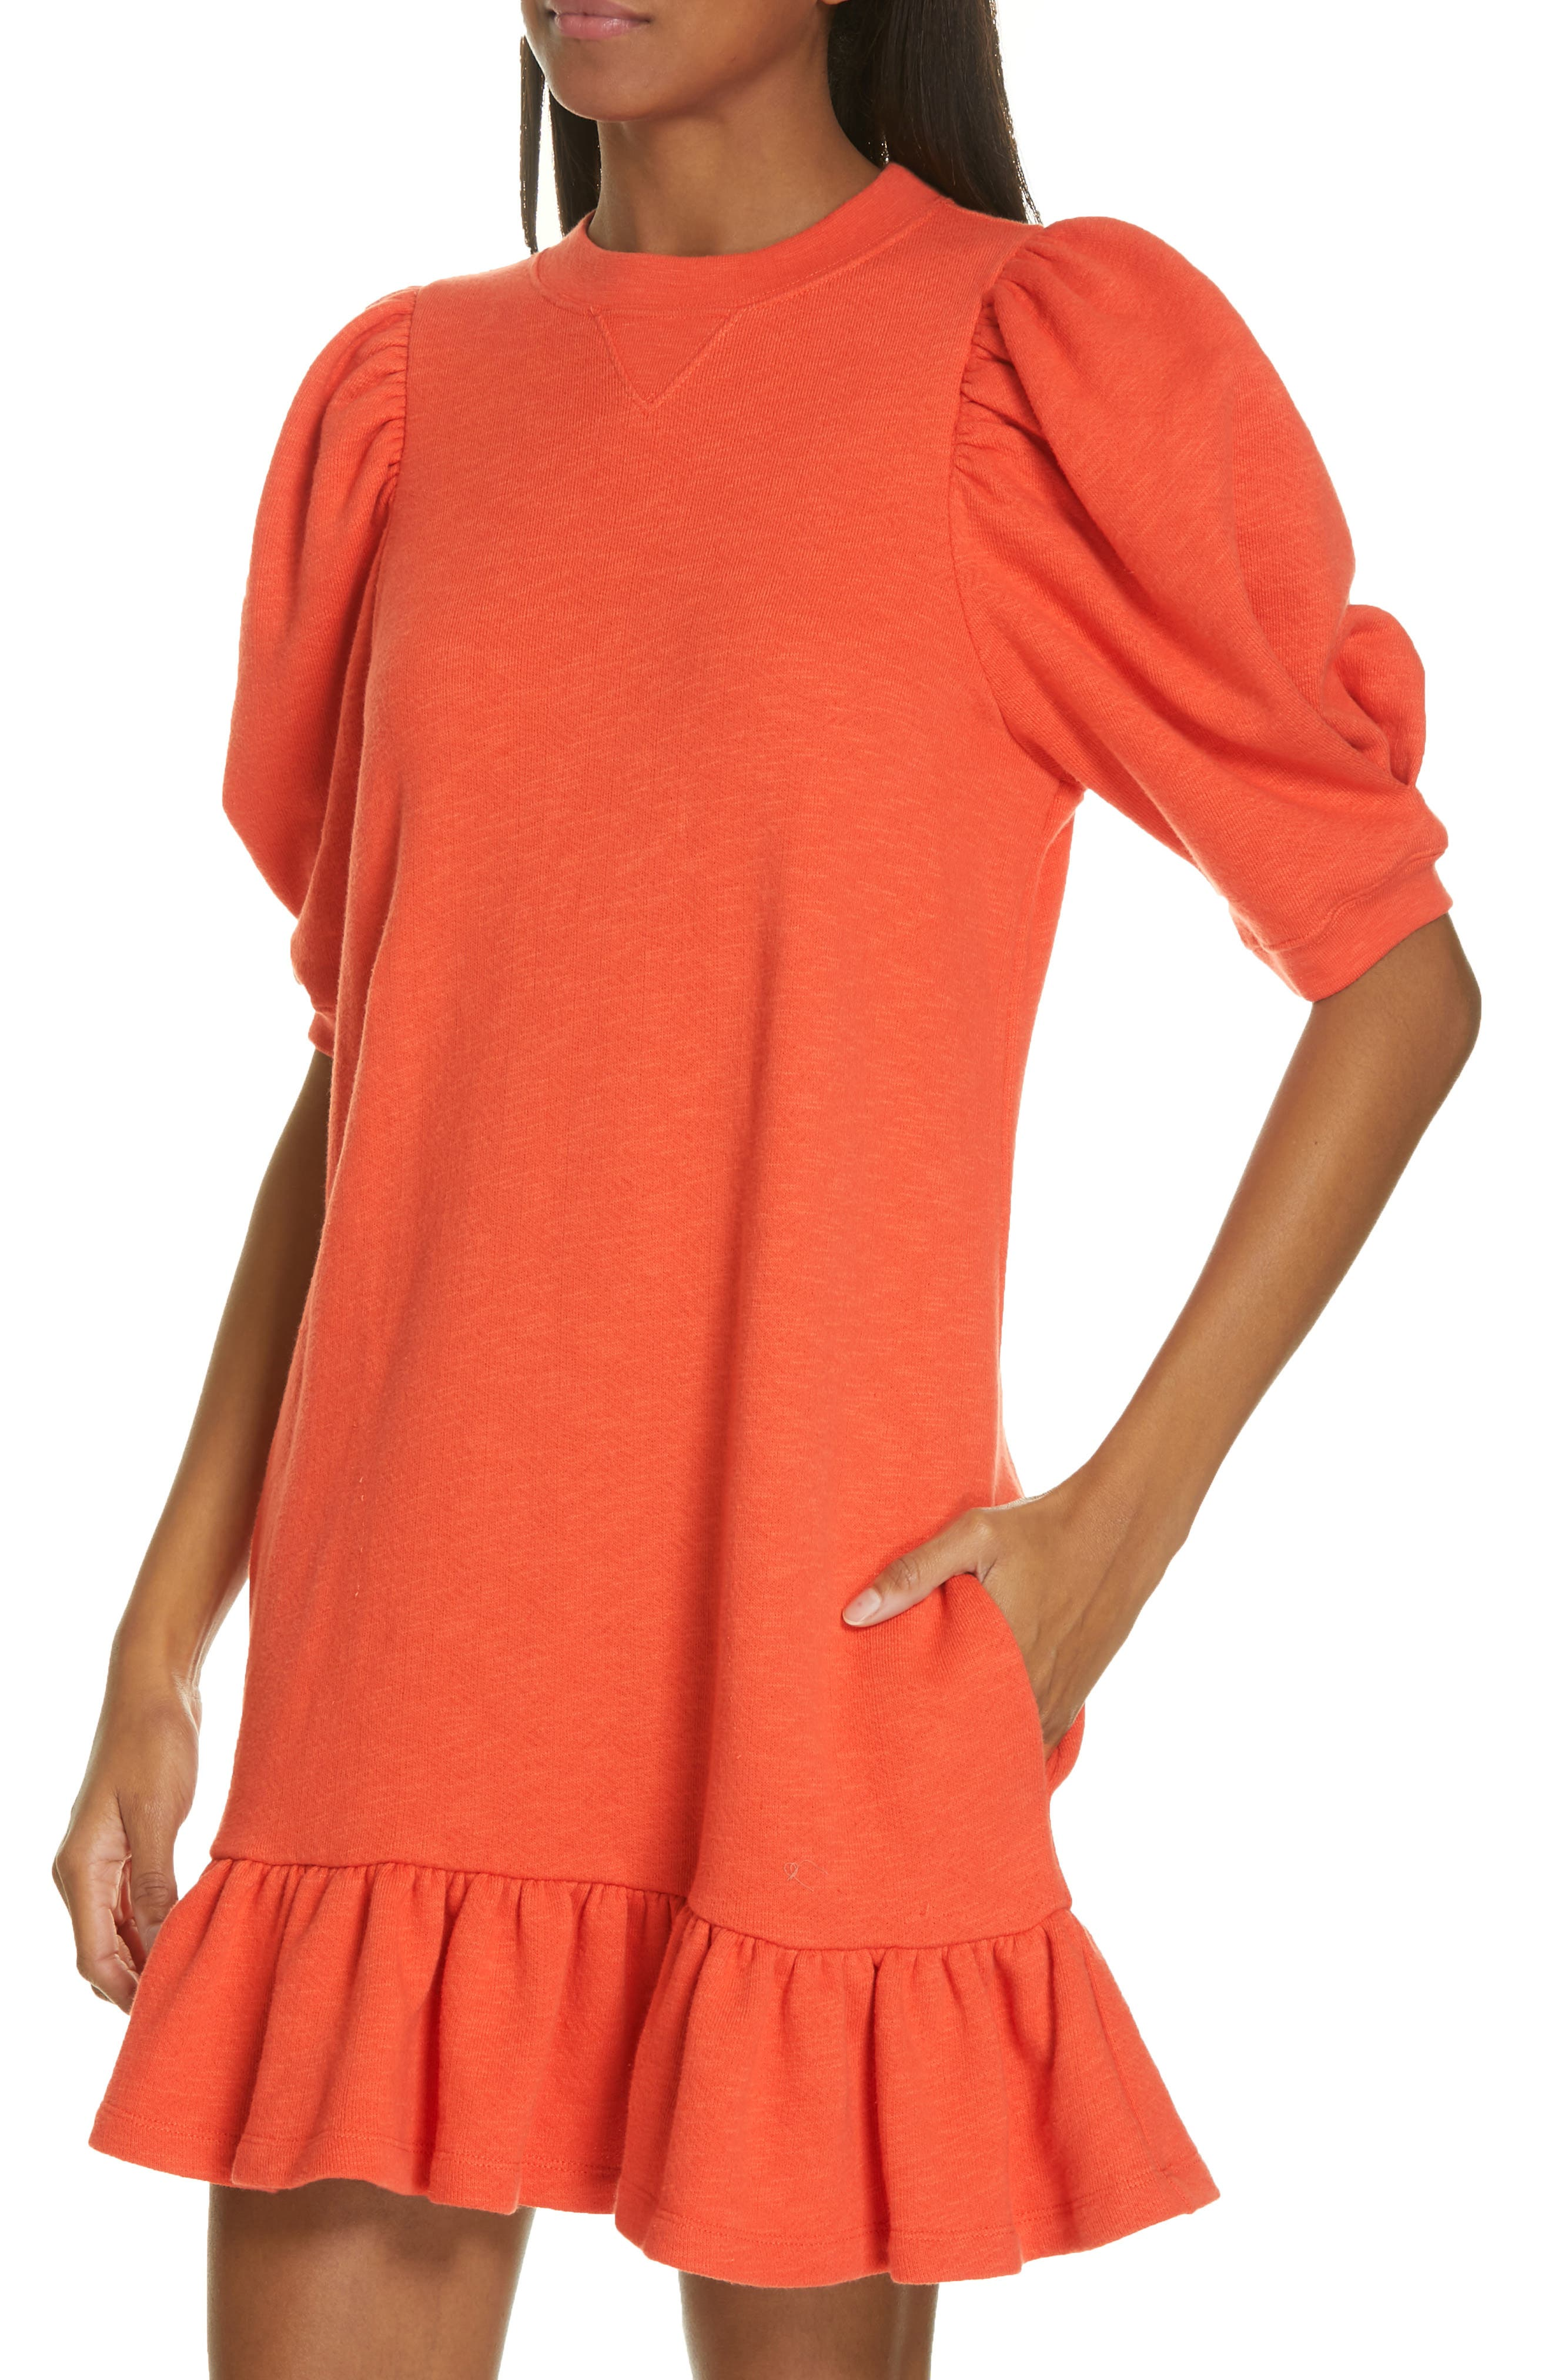 ULLA JOHNSON, Landry Puff Sleeve Sweatshirt Dress, Alternate thumbnail 4, color, CHILI